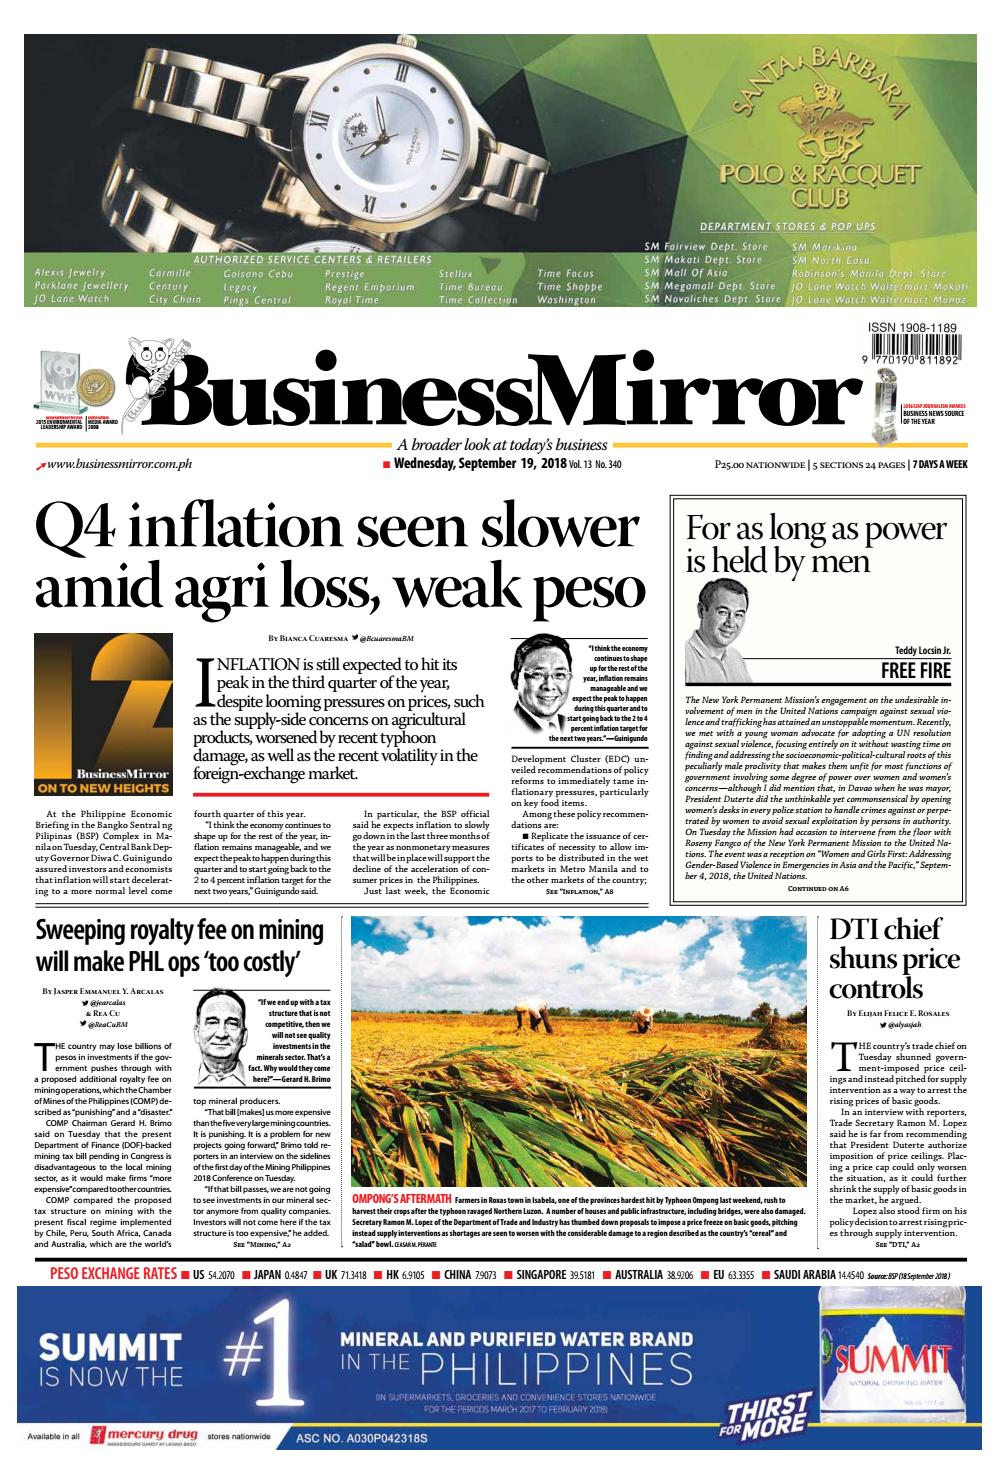 BusinessMirror September 19 7fab976152